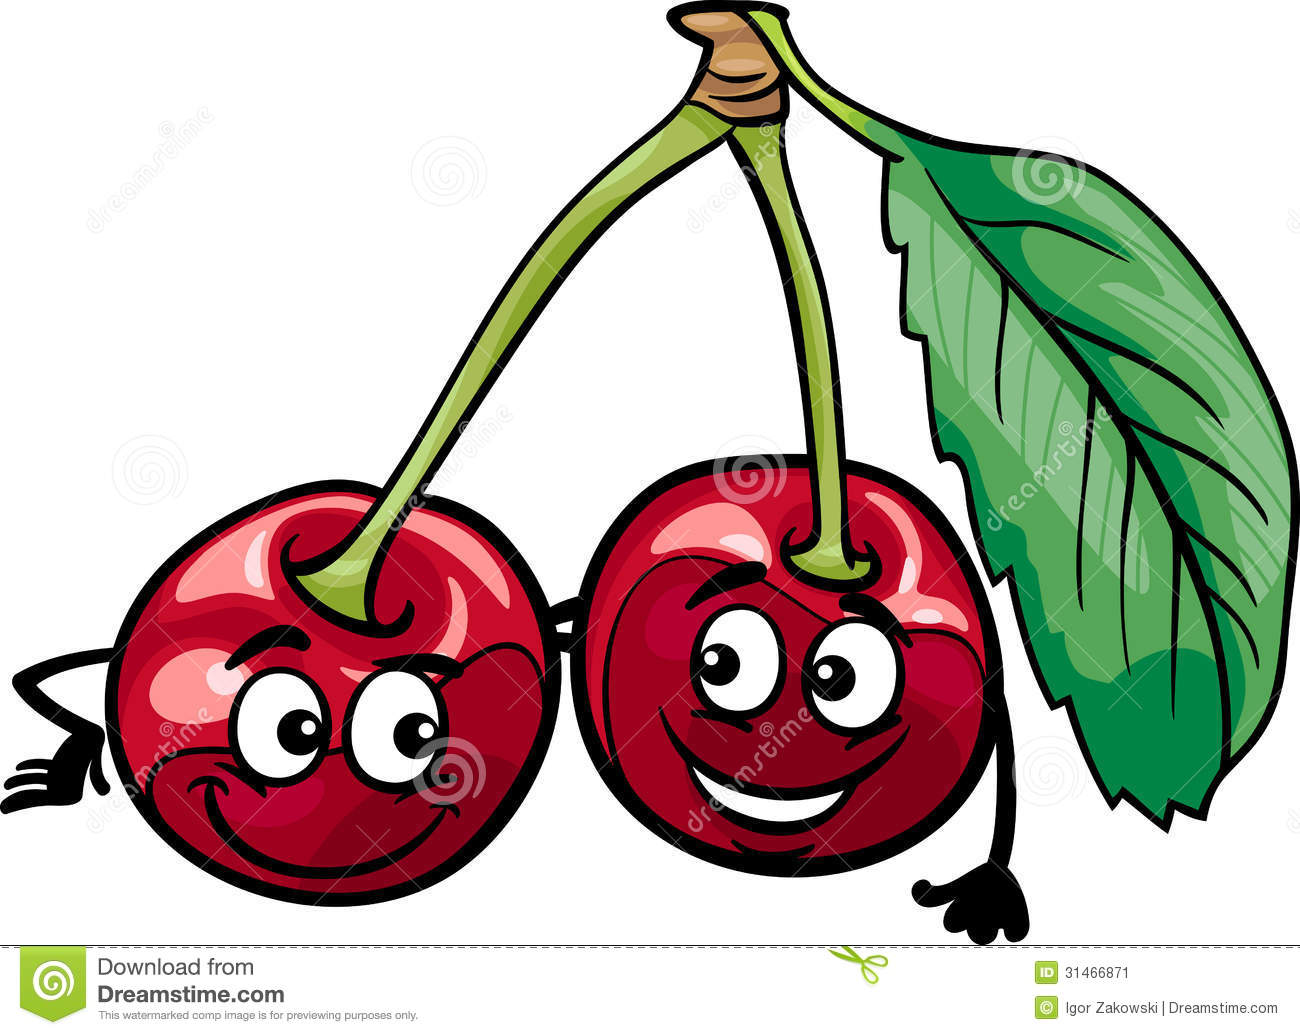 Funny Cherry Fruits Cartoon Illustration Stock Image - Image: 31466871